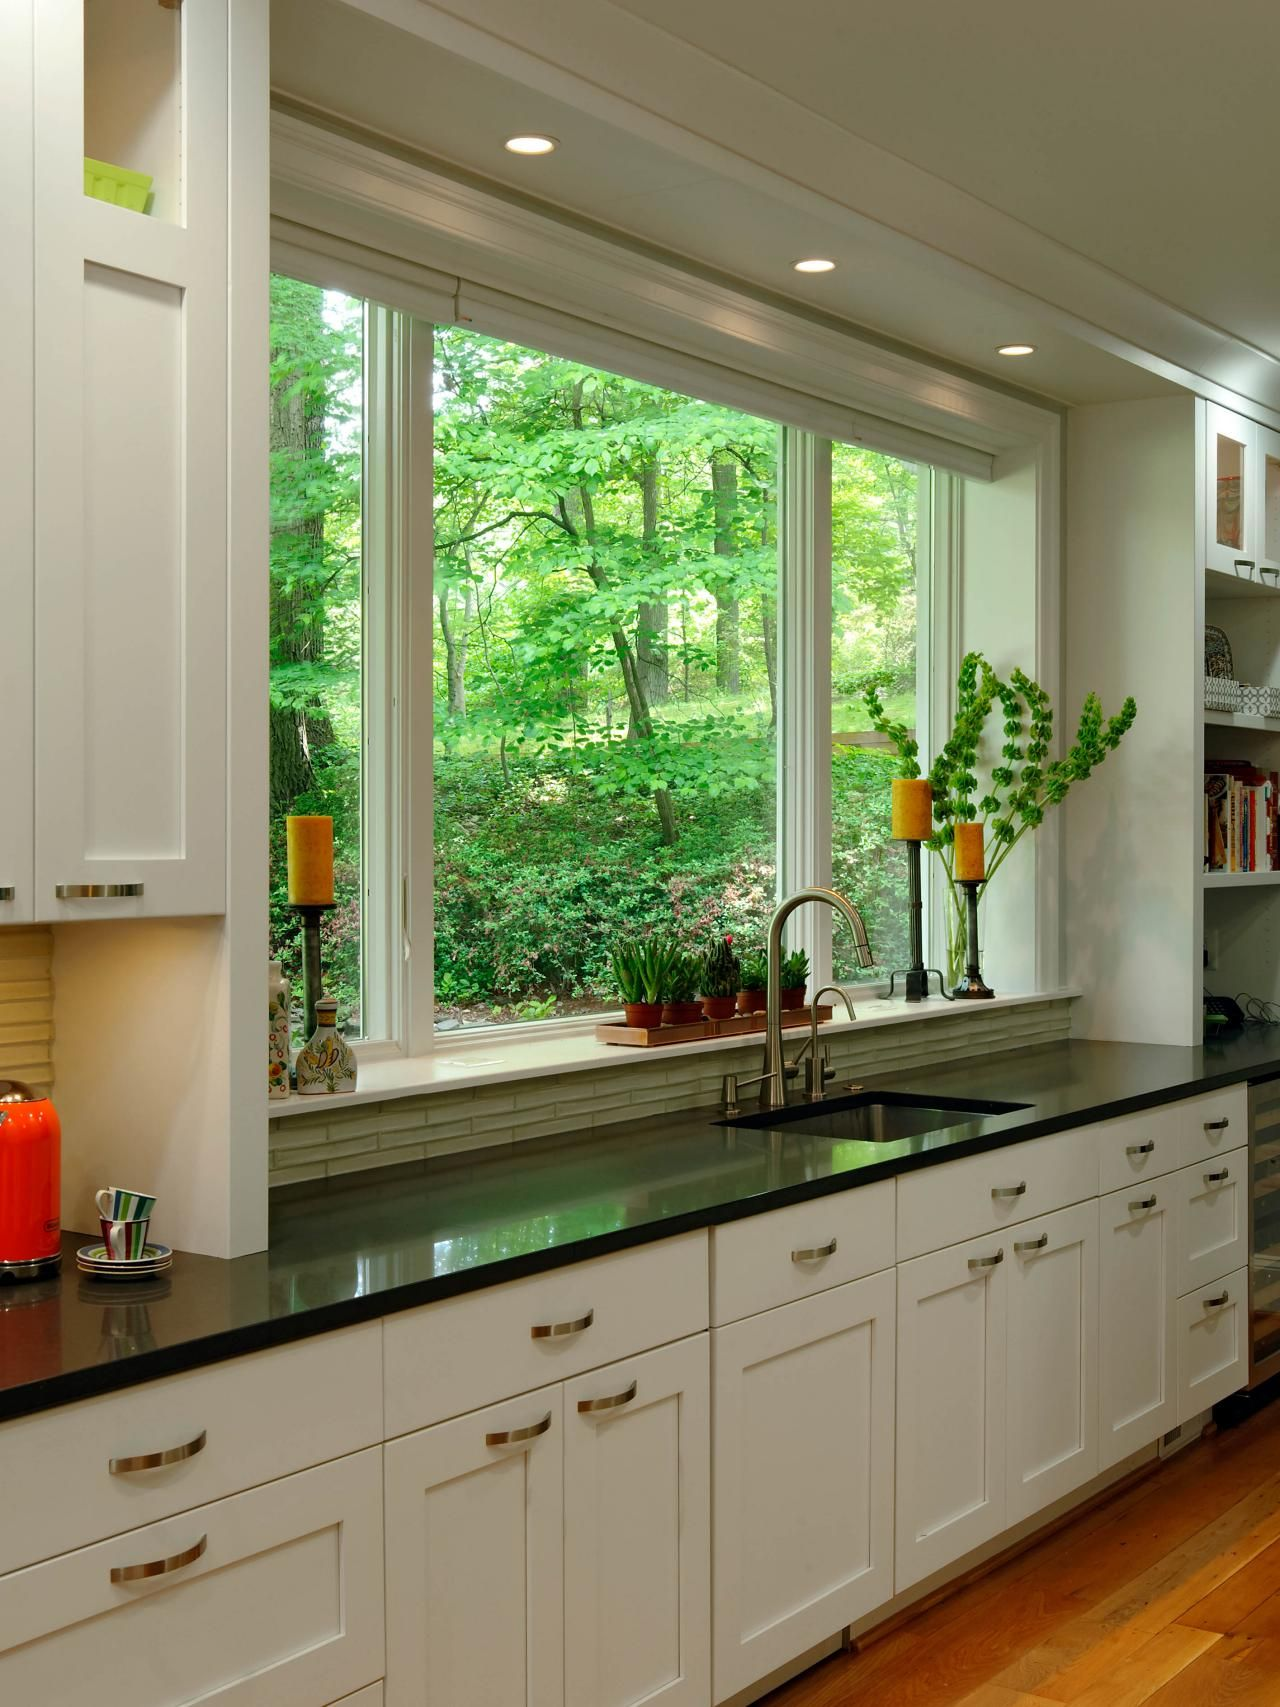 Kitchen Window Pictures The Best Options Styles Ideas Design With Cabinets Islands Backsplashes Hgtv